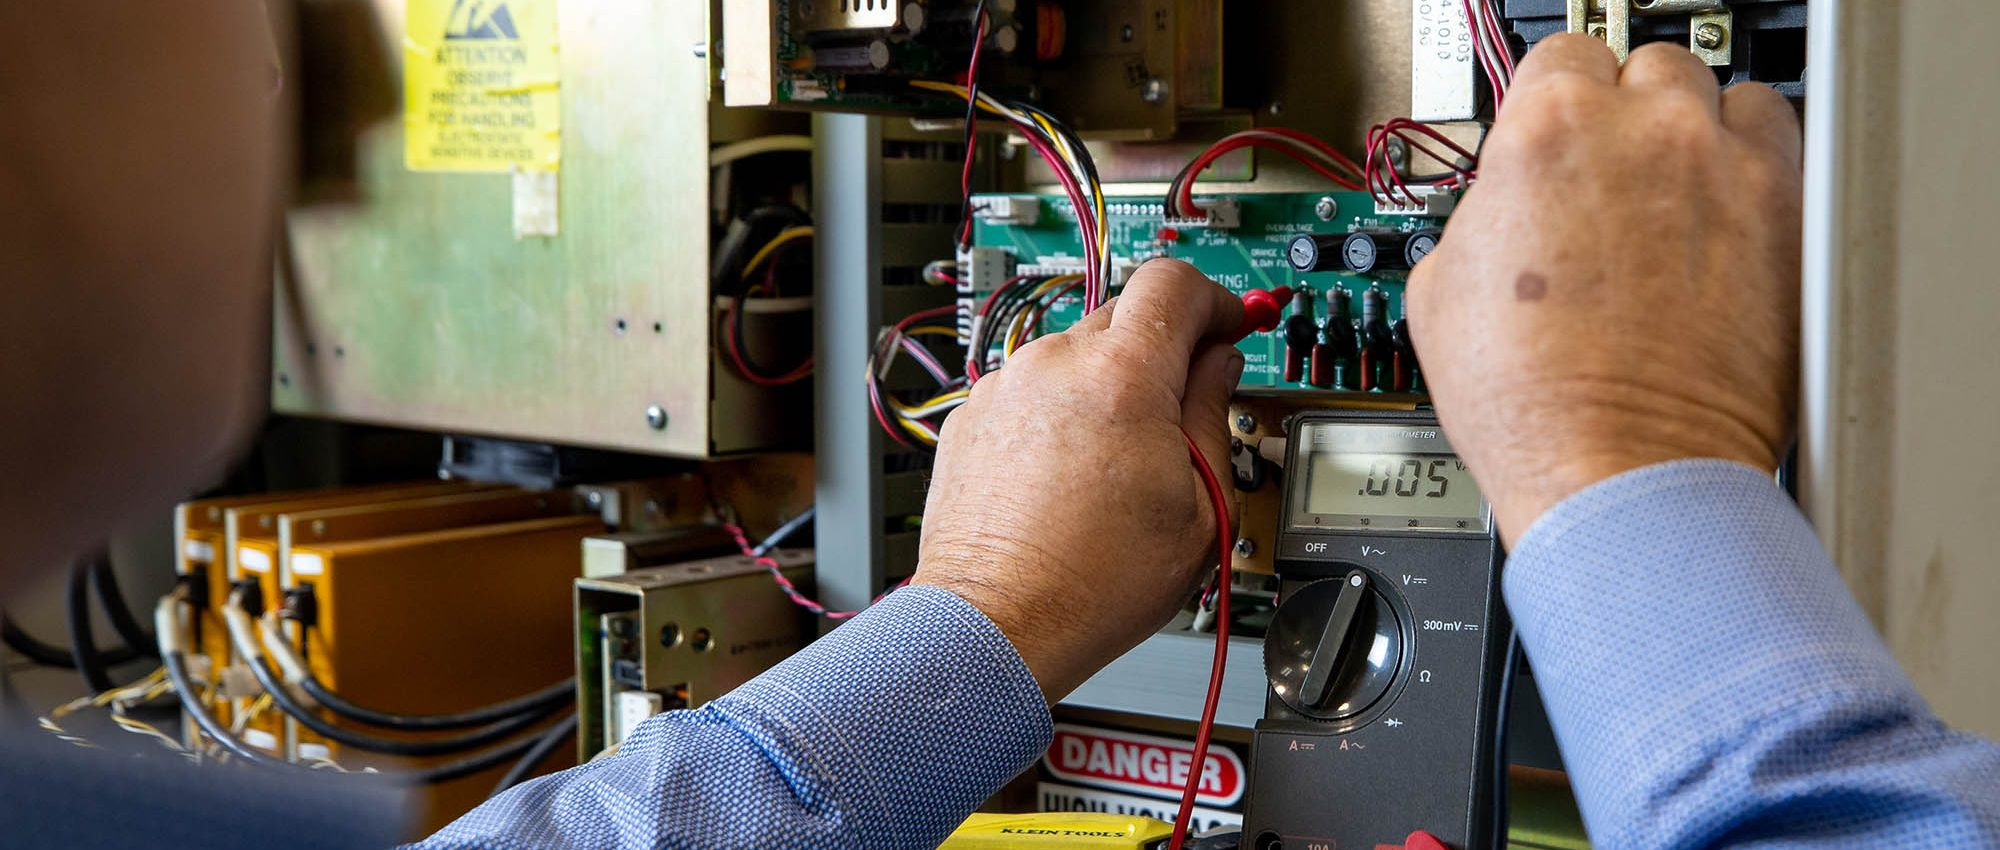 picture of an industrial maintenance technician using an ohm meter